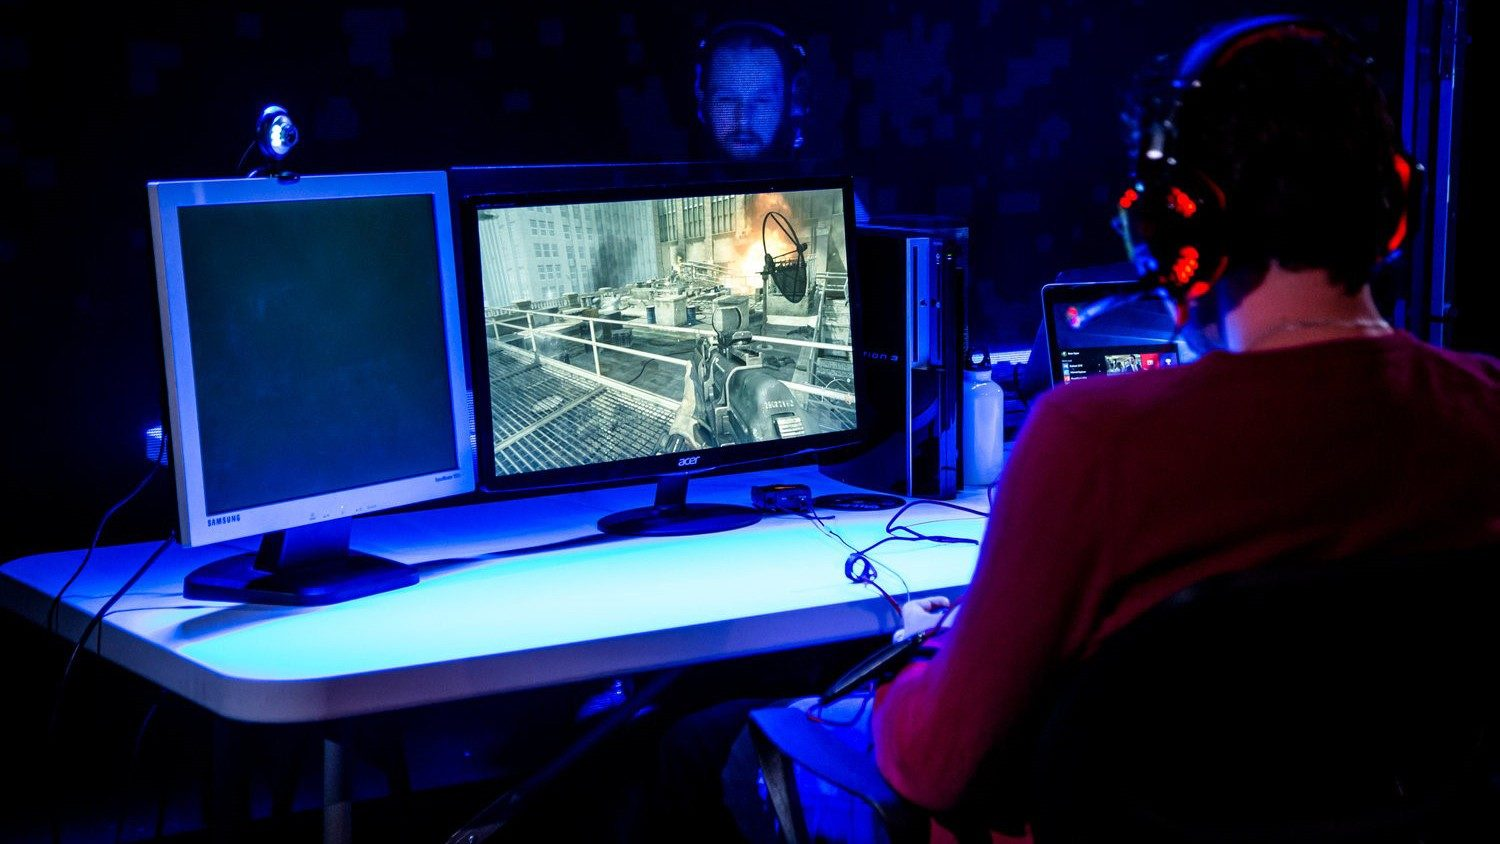 Writer and performer Javaad Alipoor wears red headphones and sits in front of two computer screens on a table, one showing a video game similar to Call of Duty